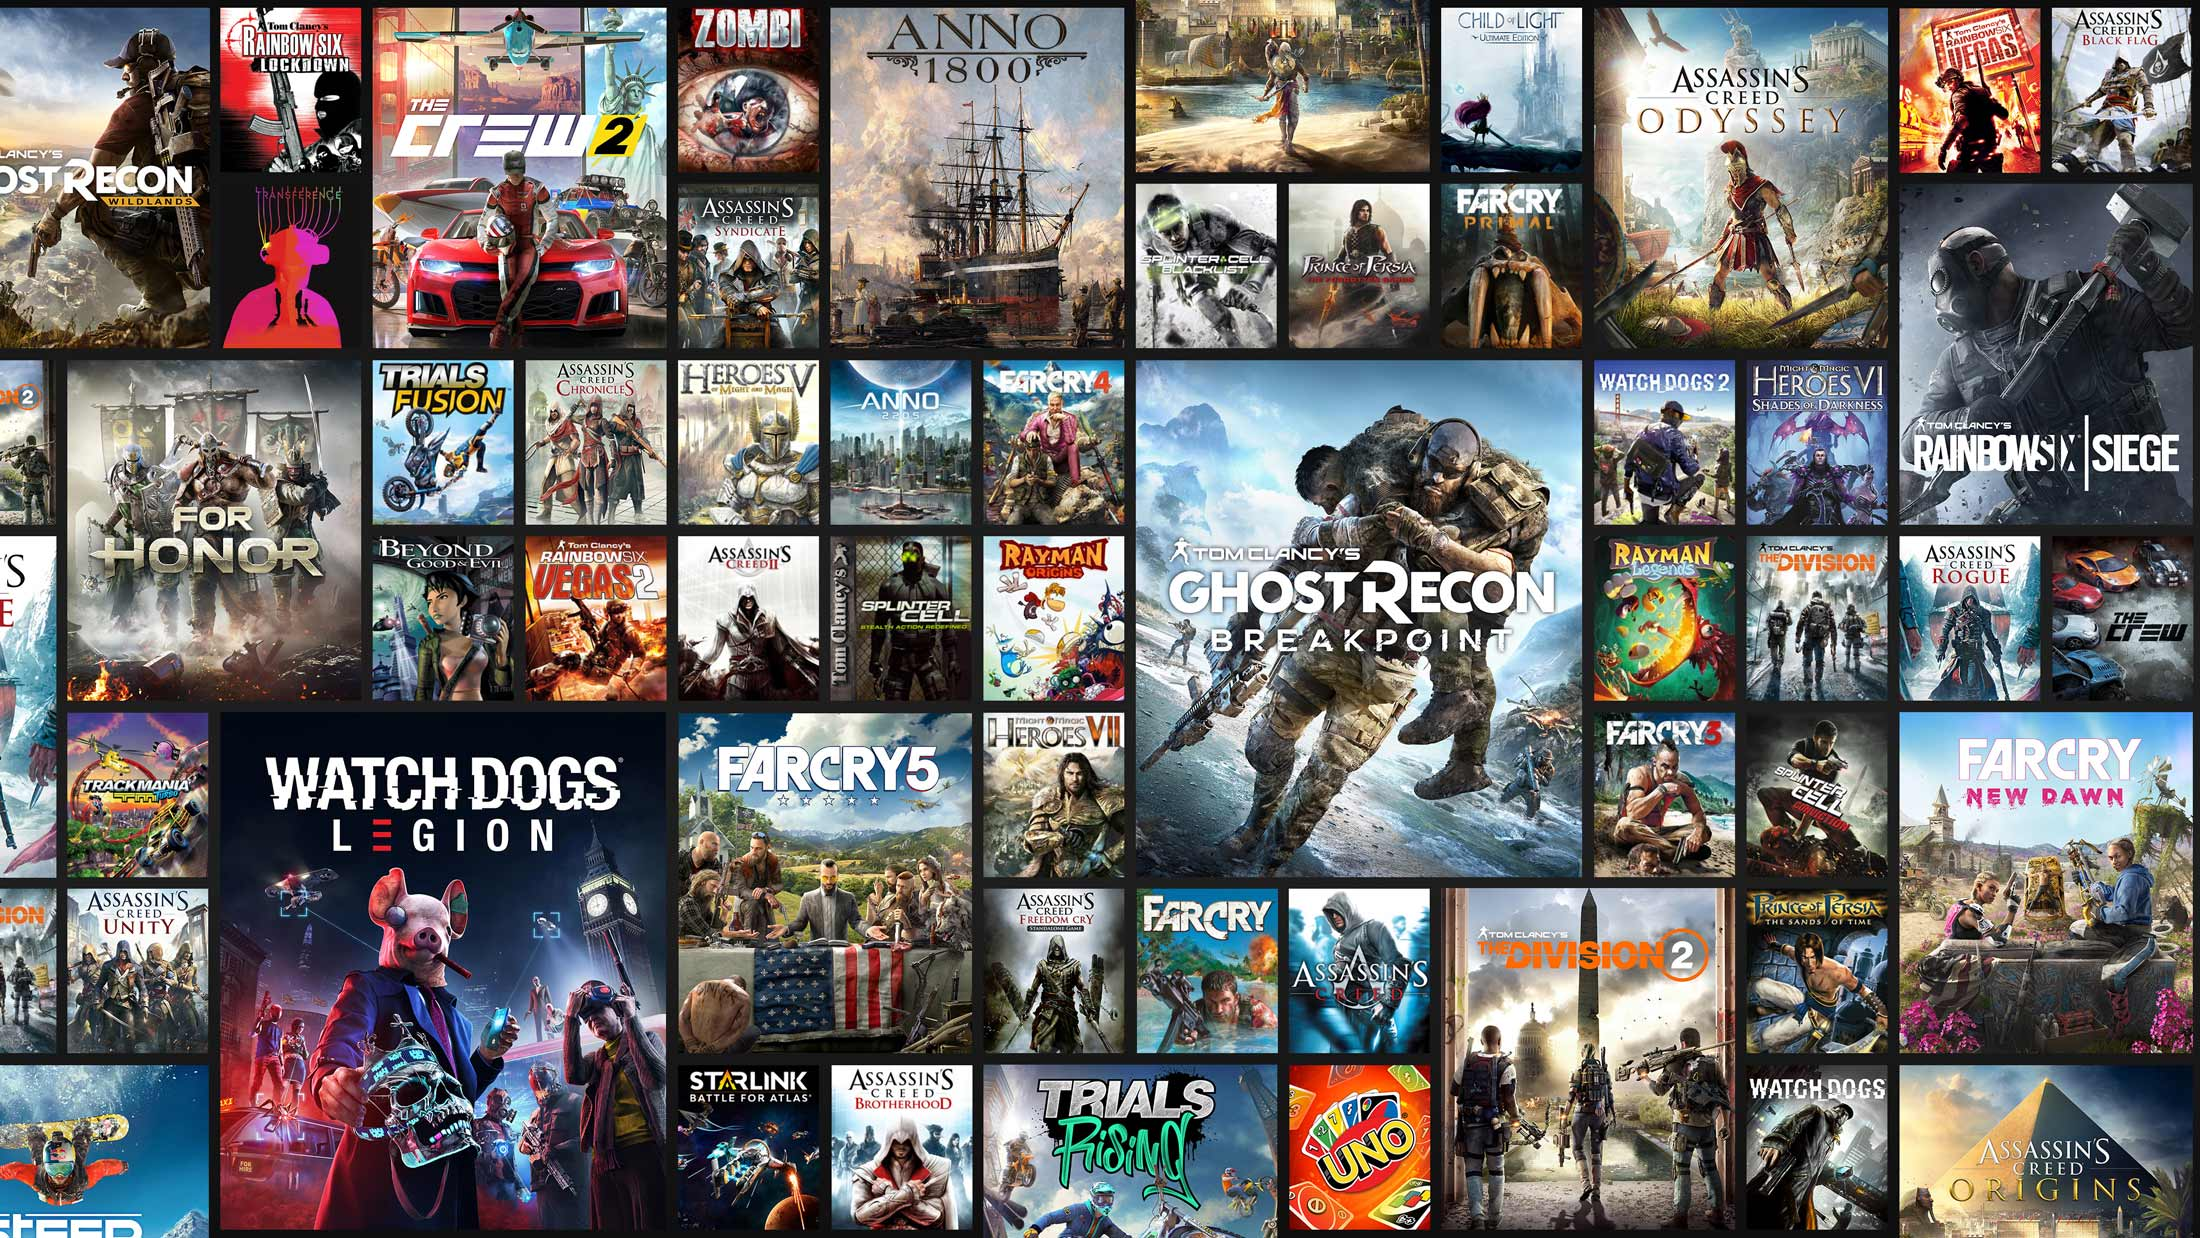 See the full list of games included with UPLAY+